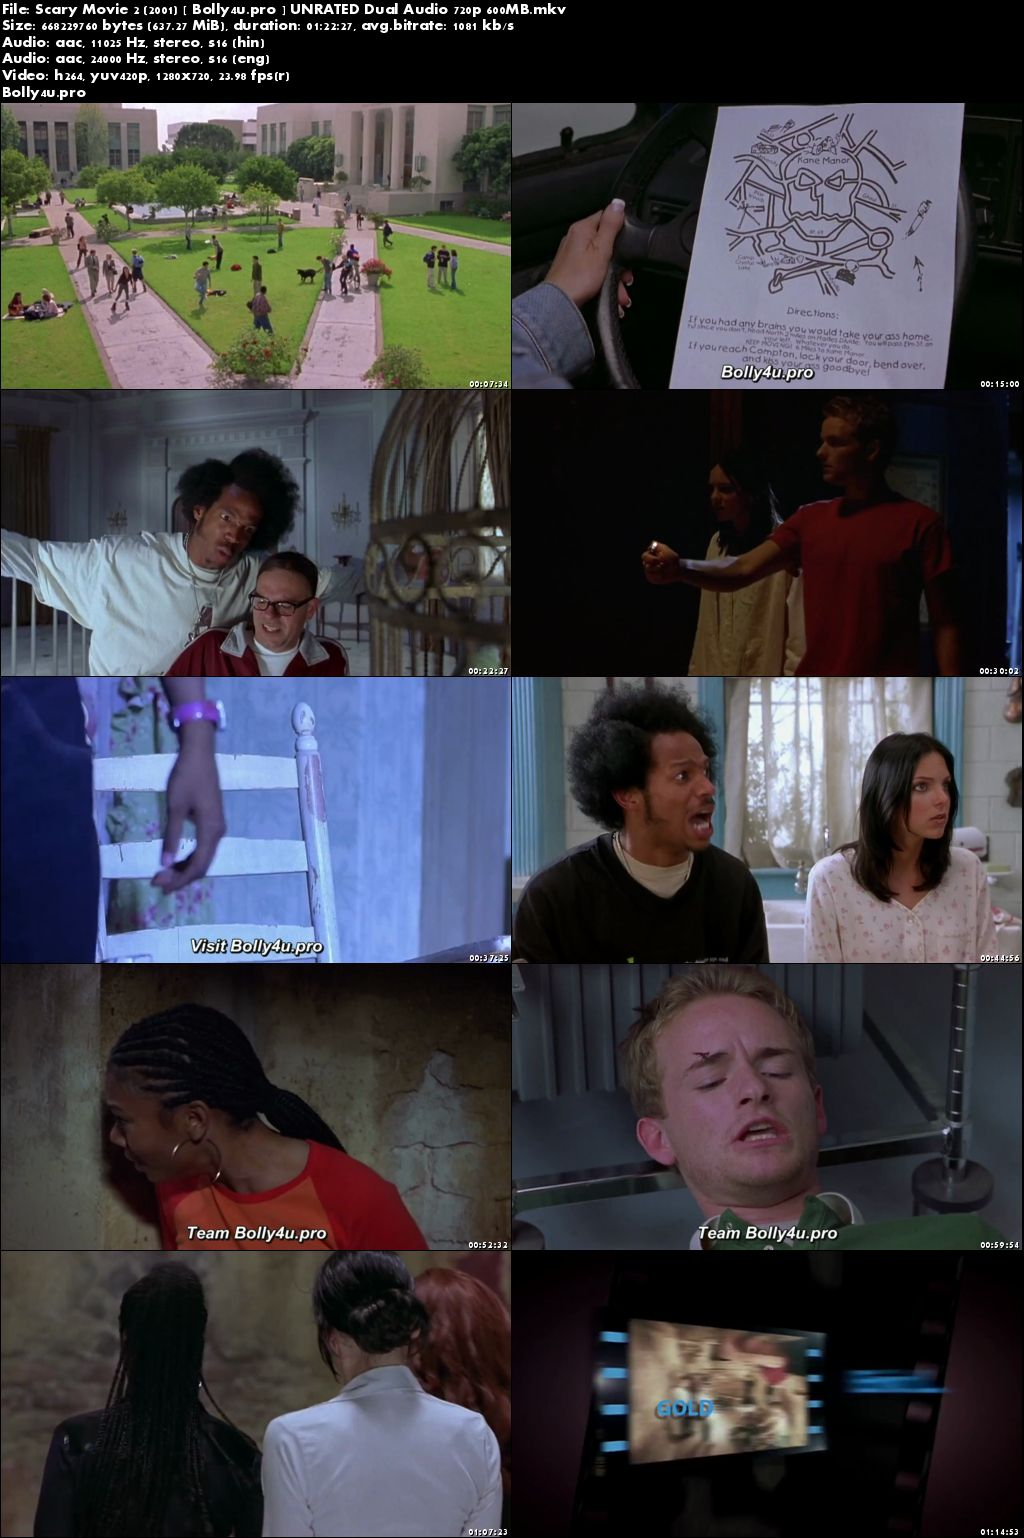 Scary Movie 2 2001 BRRip 600MB UNRATED Hindi Dual Audio 720p download